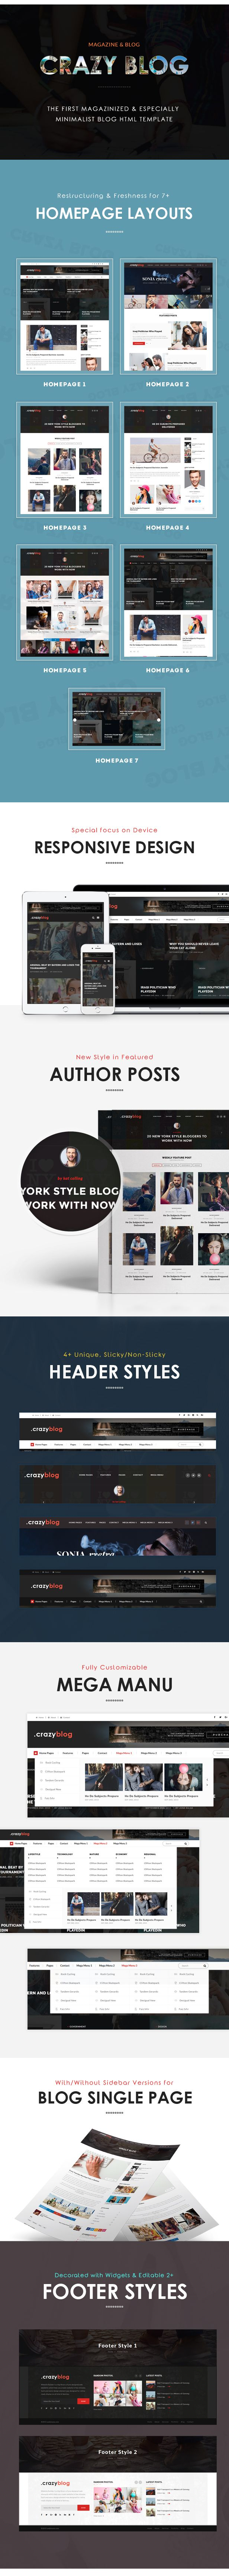 CrazyBlog - Blog HTML Template for Ads Businesses (Personal ...